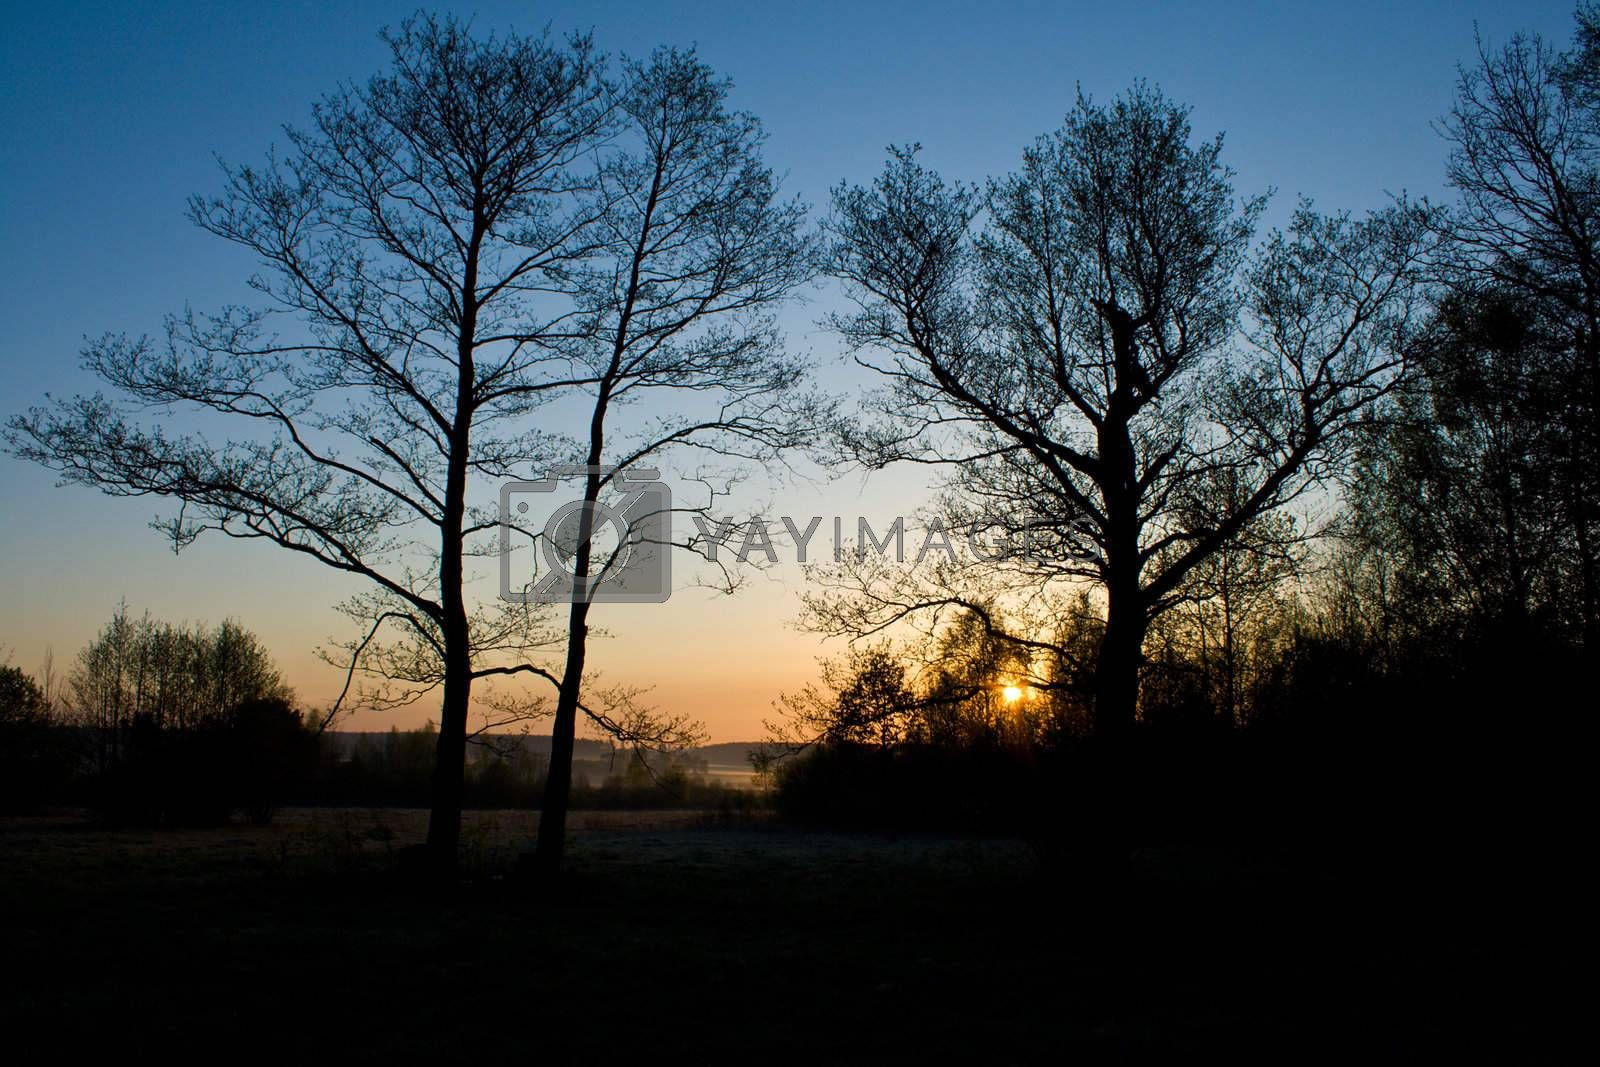 close-up trees silhouette on sunrise